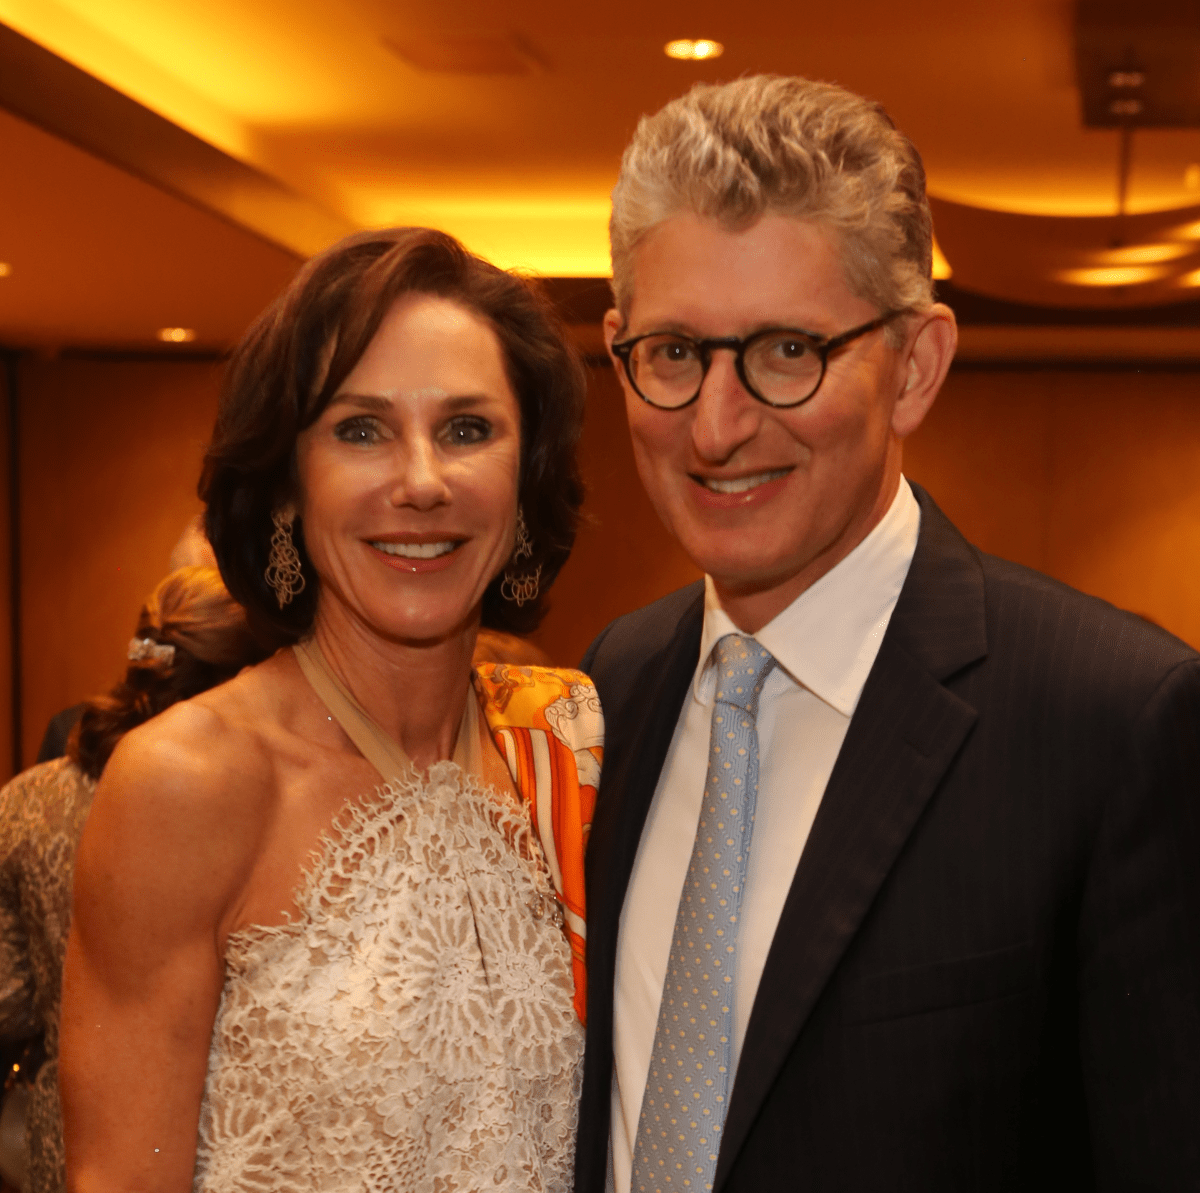 Holocaust Museum LBJ Dinner, 6/16  Heidi Gerger, David Gerger